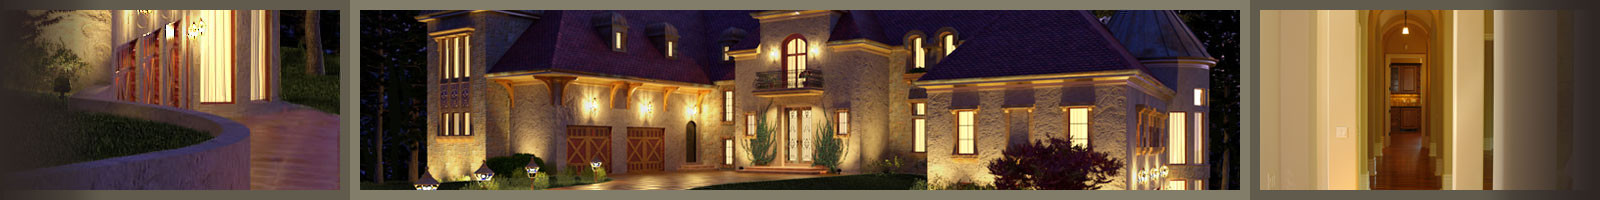 Impel Inc. - European Design Build Concept for Residential Architecture in Charlotte, North Carolina